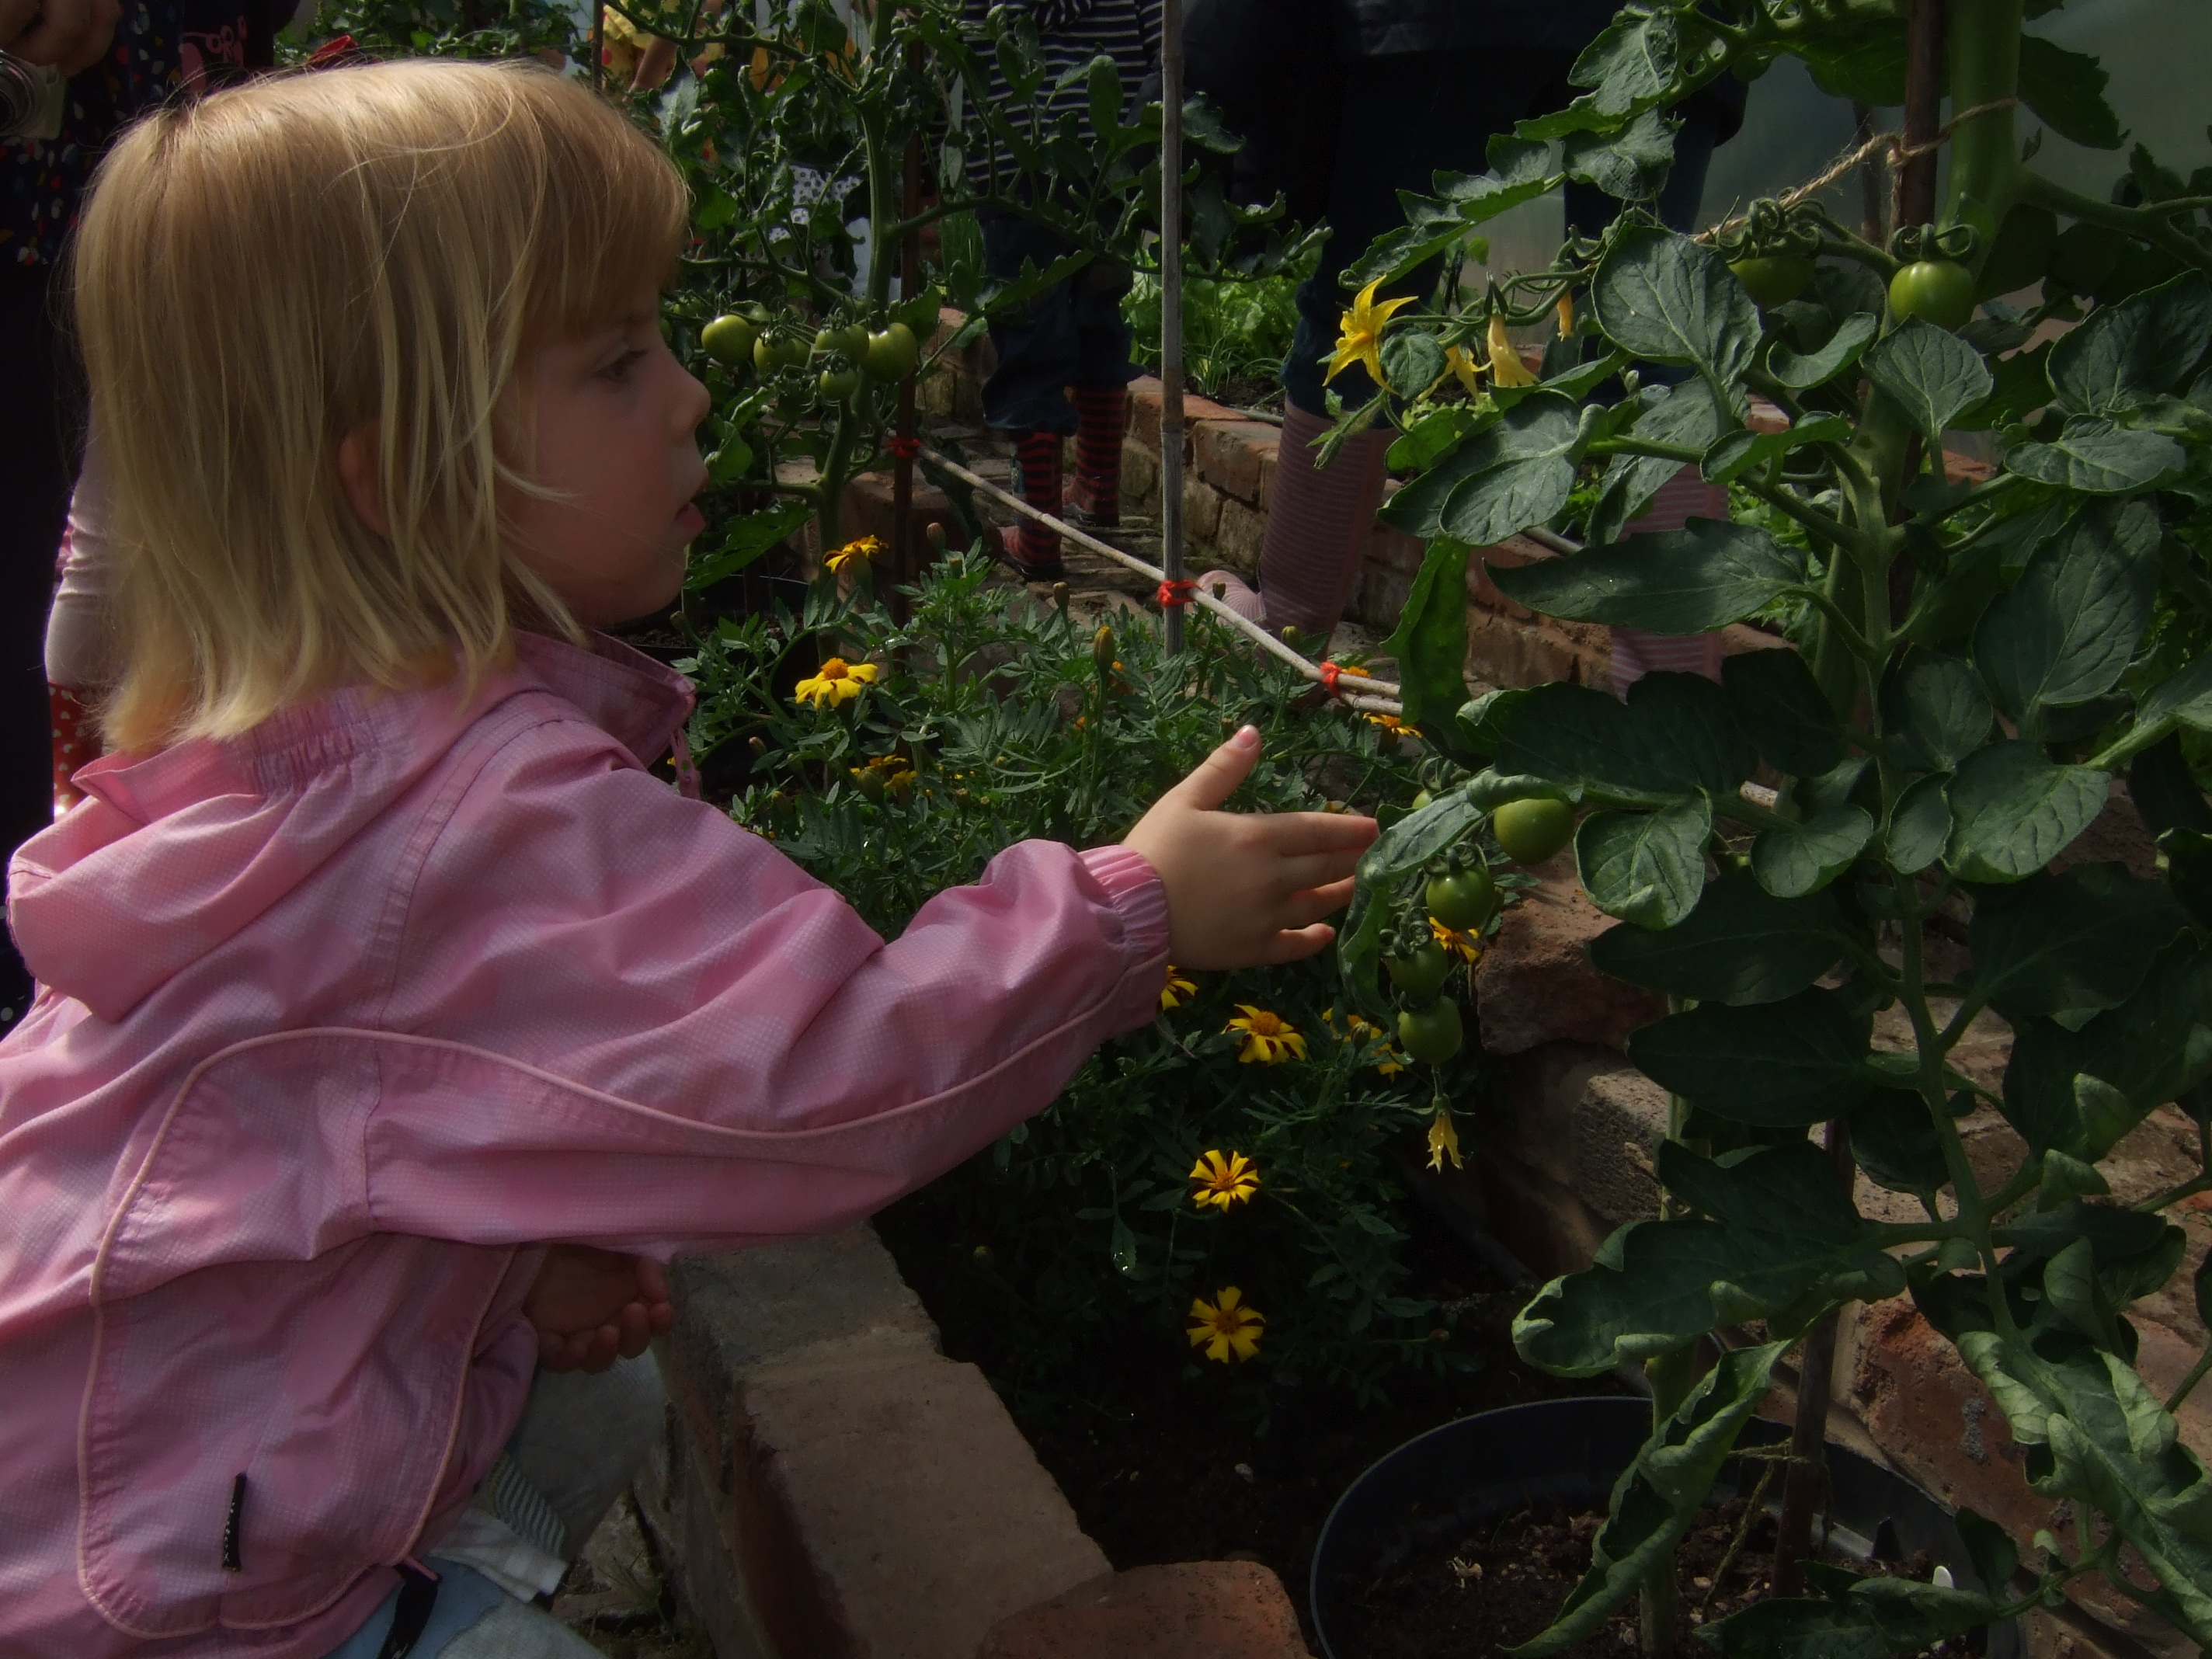 child investigates plants